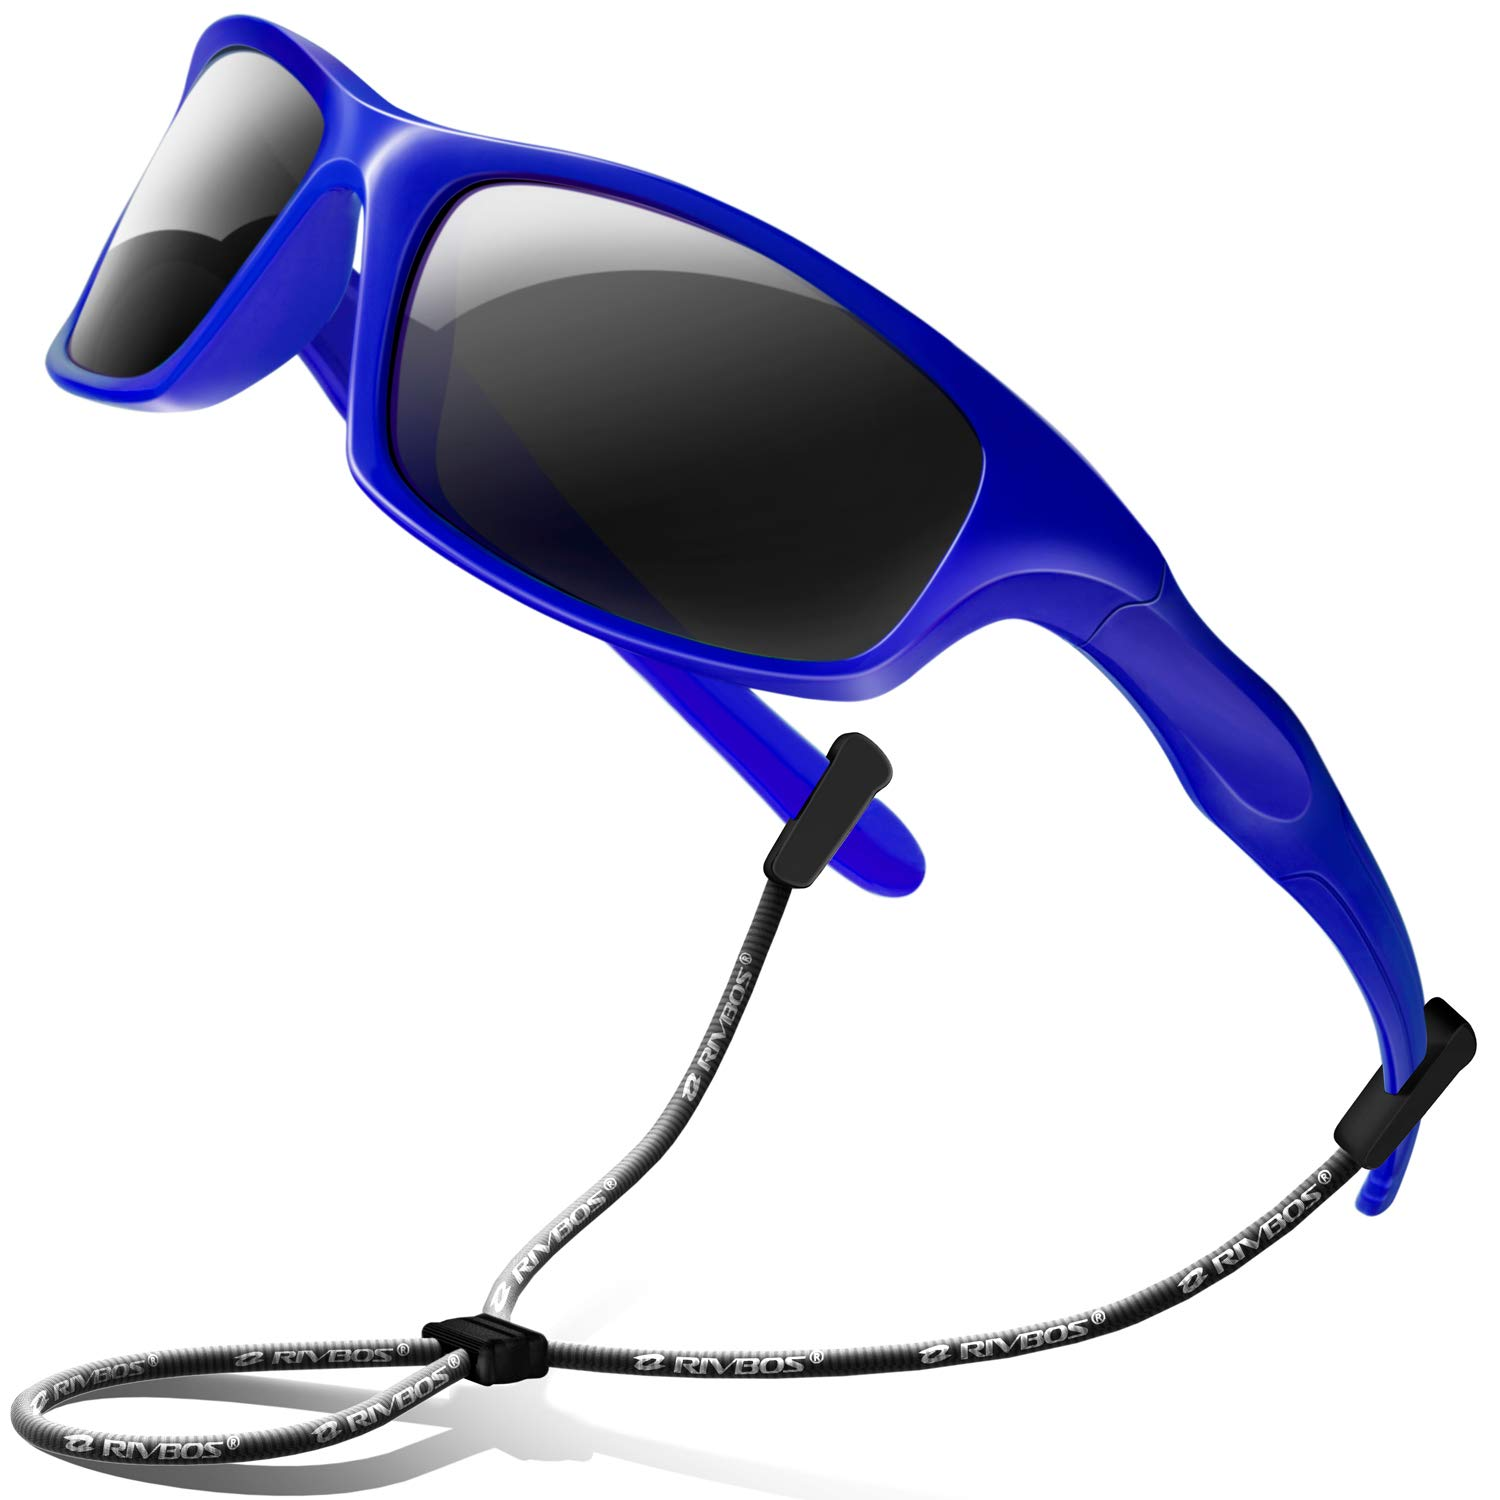 102669e4f5f Amazon.com  RIVBOS Rubber Kids Polarized Sunglasses With Strap Glasses  Shades for Boys Girls Baby and Children Age 3-10 RBK003 (003-2 Blue)   Clothing